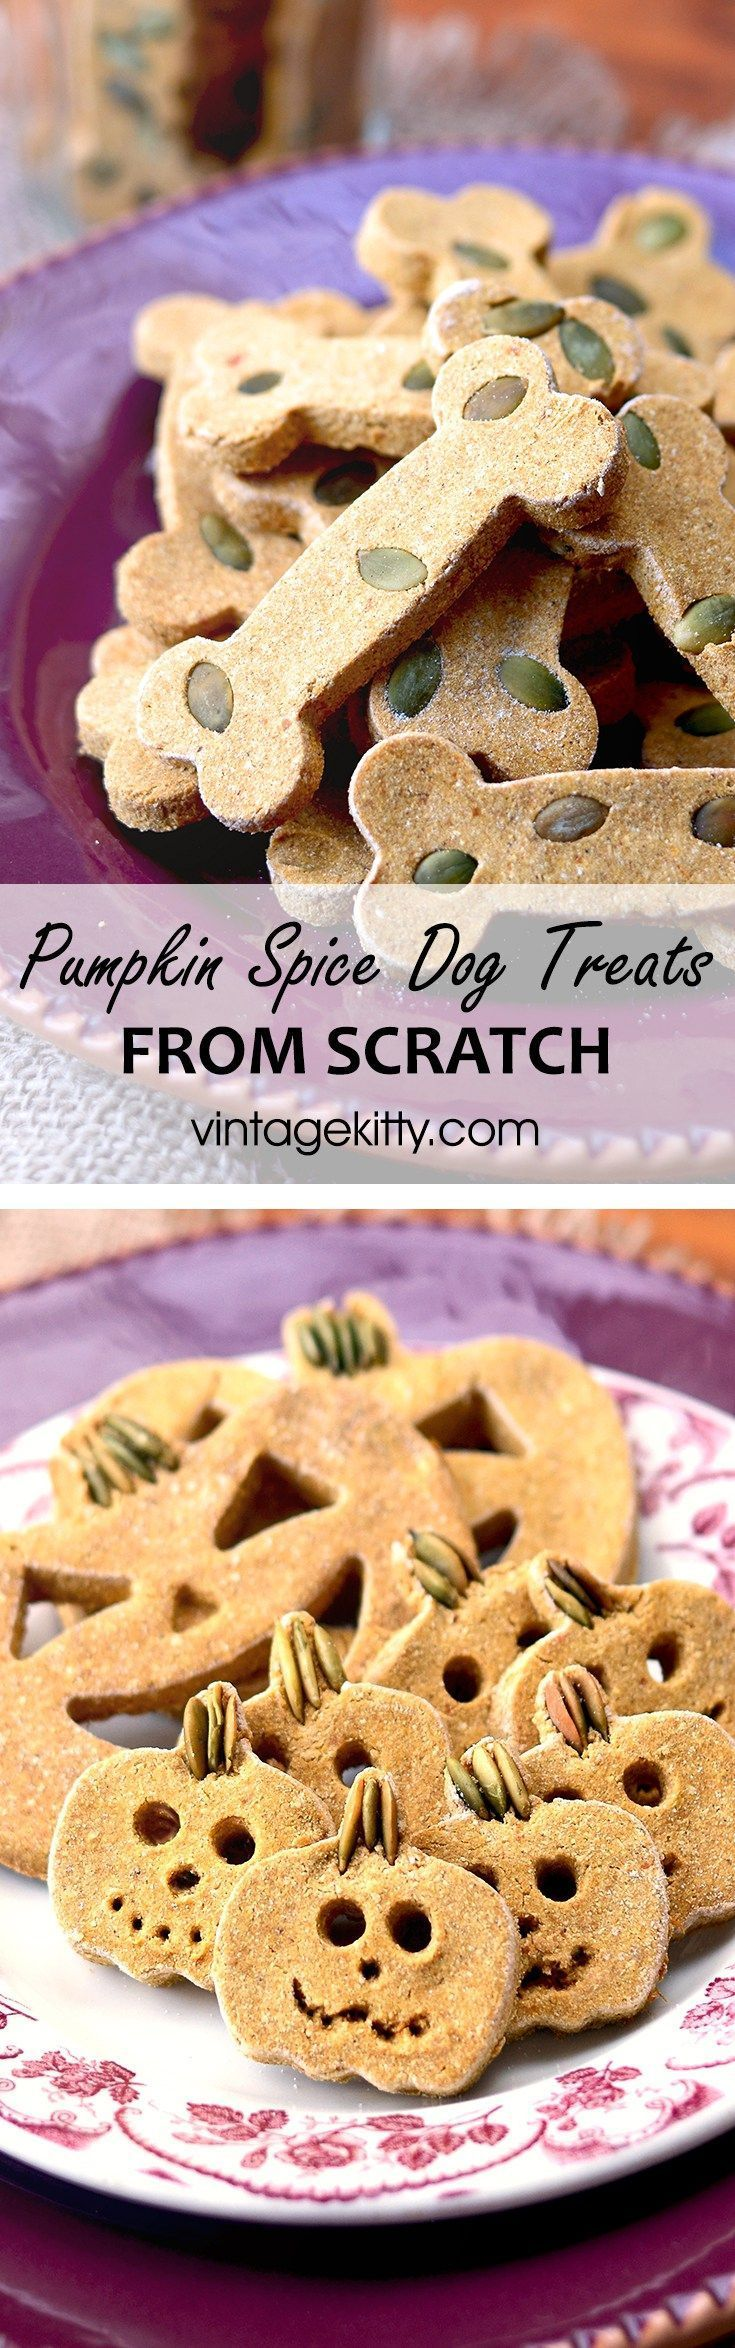 Don't forget your dog friends this Halloween! Show your furry companions how much you love them with these gluten-free Pumpkin Spice Dog Treats.